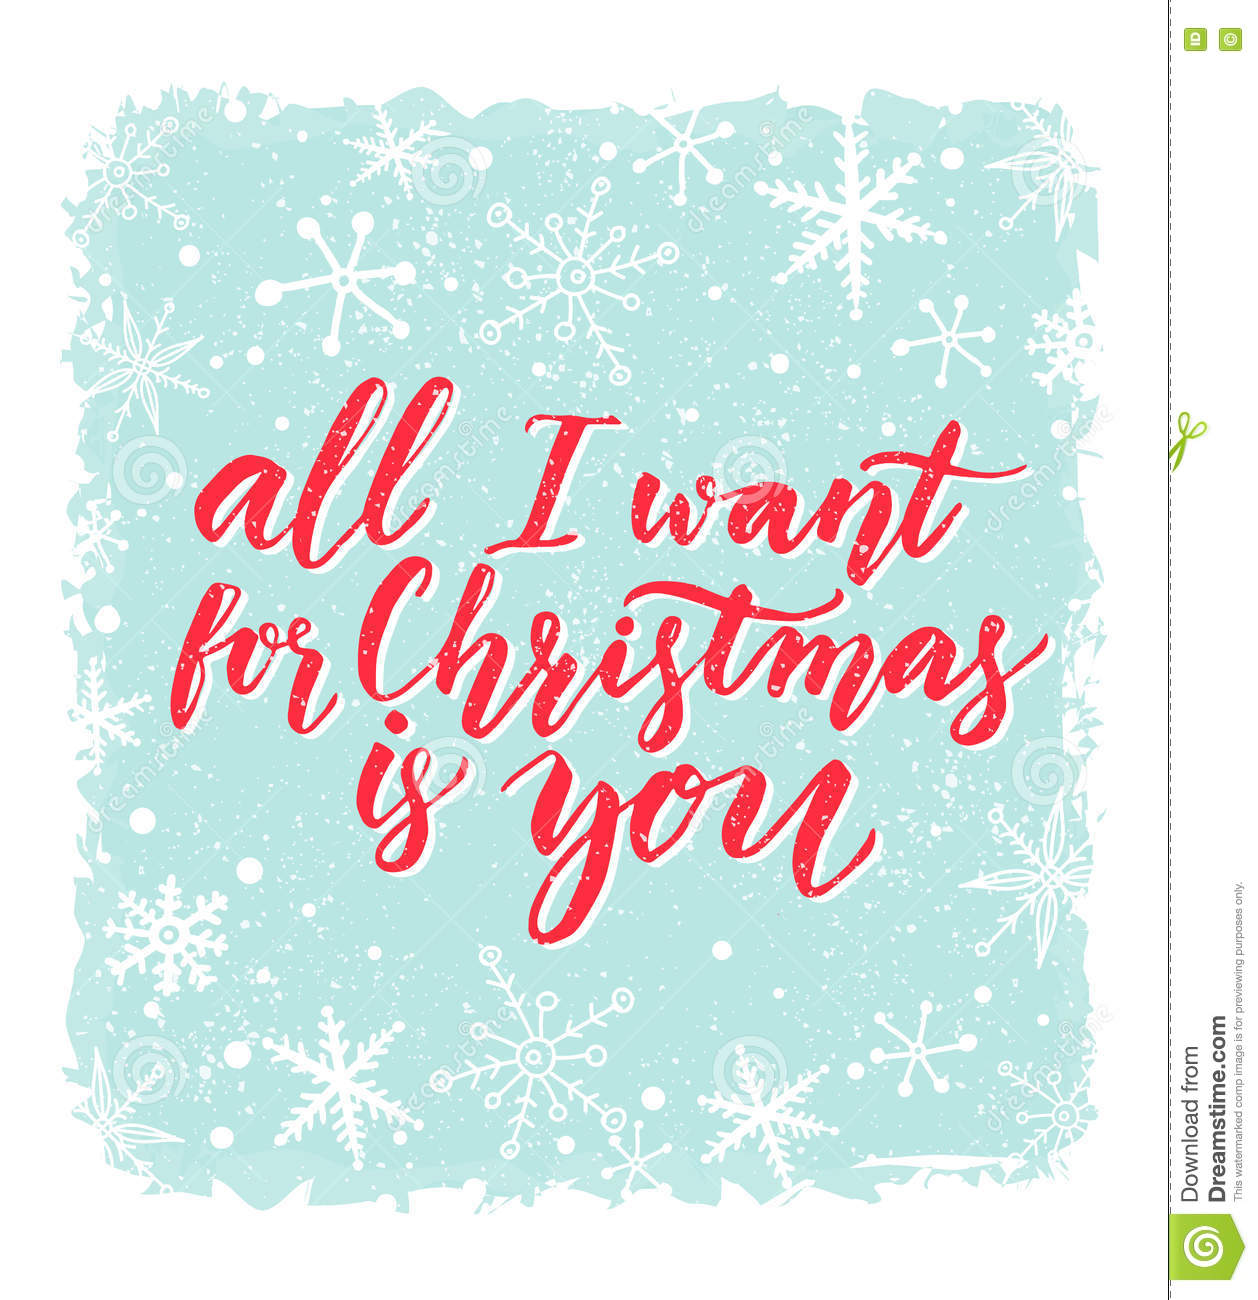 All I Want For Christmas Is You Greeting Card With Romantic Saying